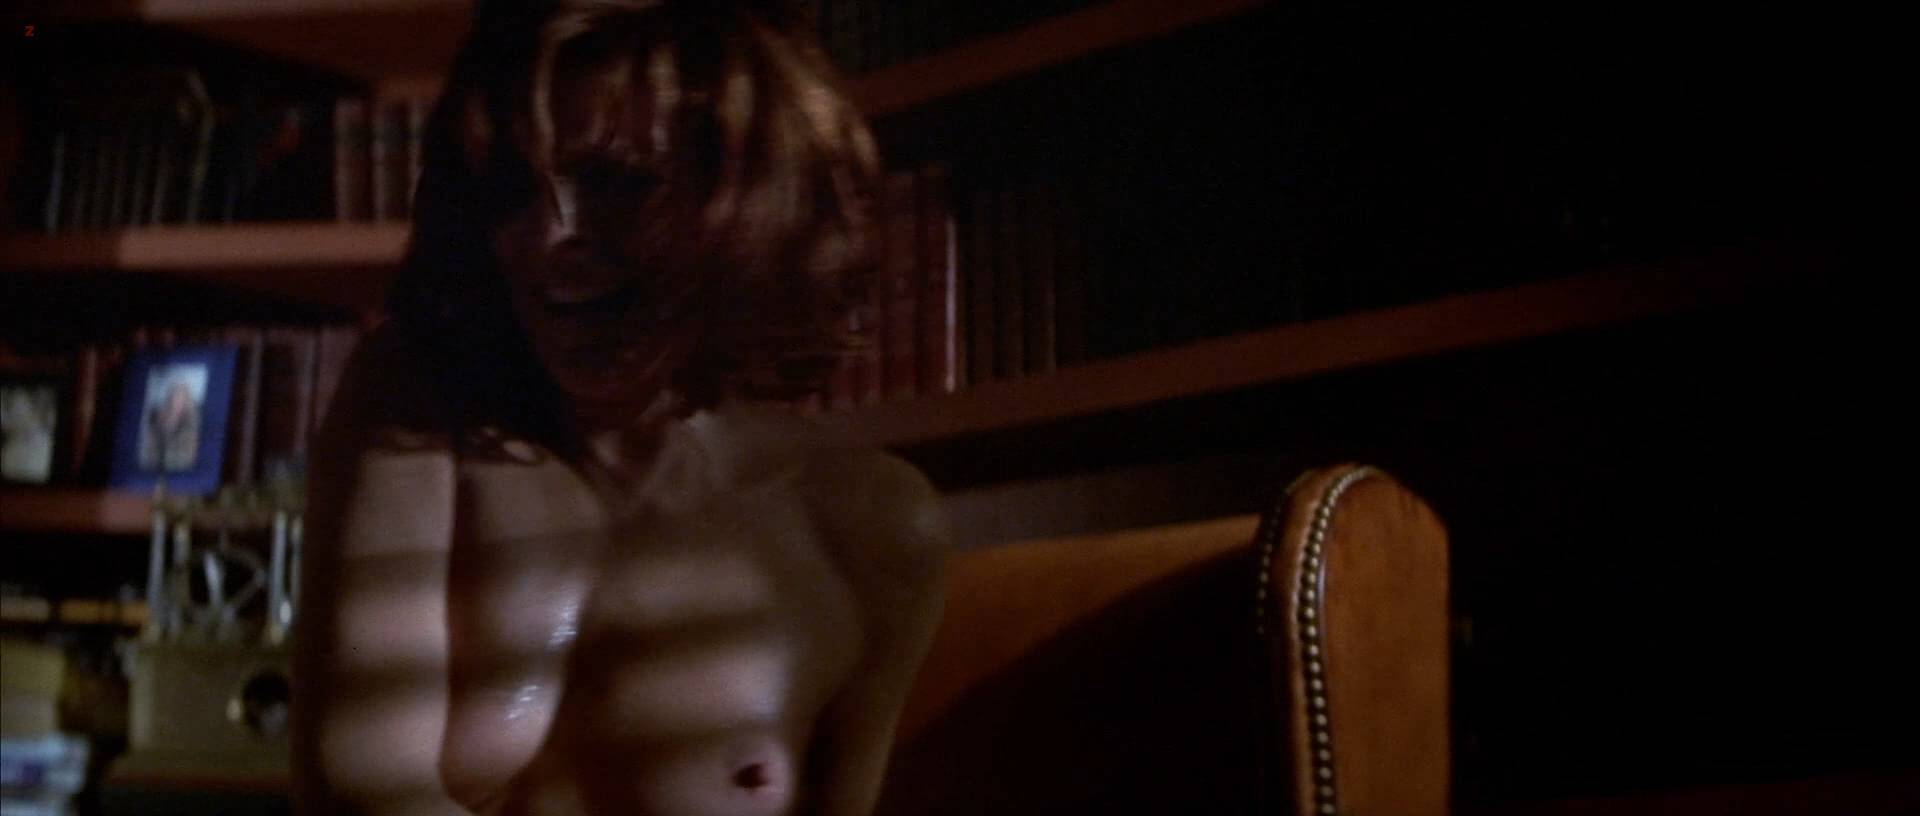 Better, thomas crown affair rene russo nude matures porn advise